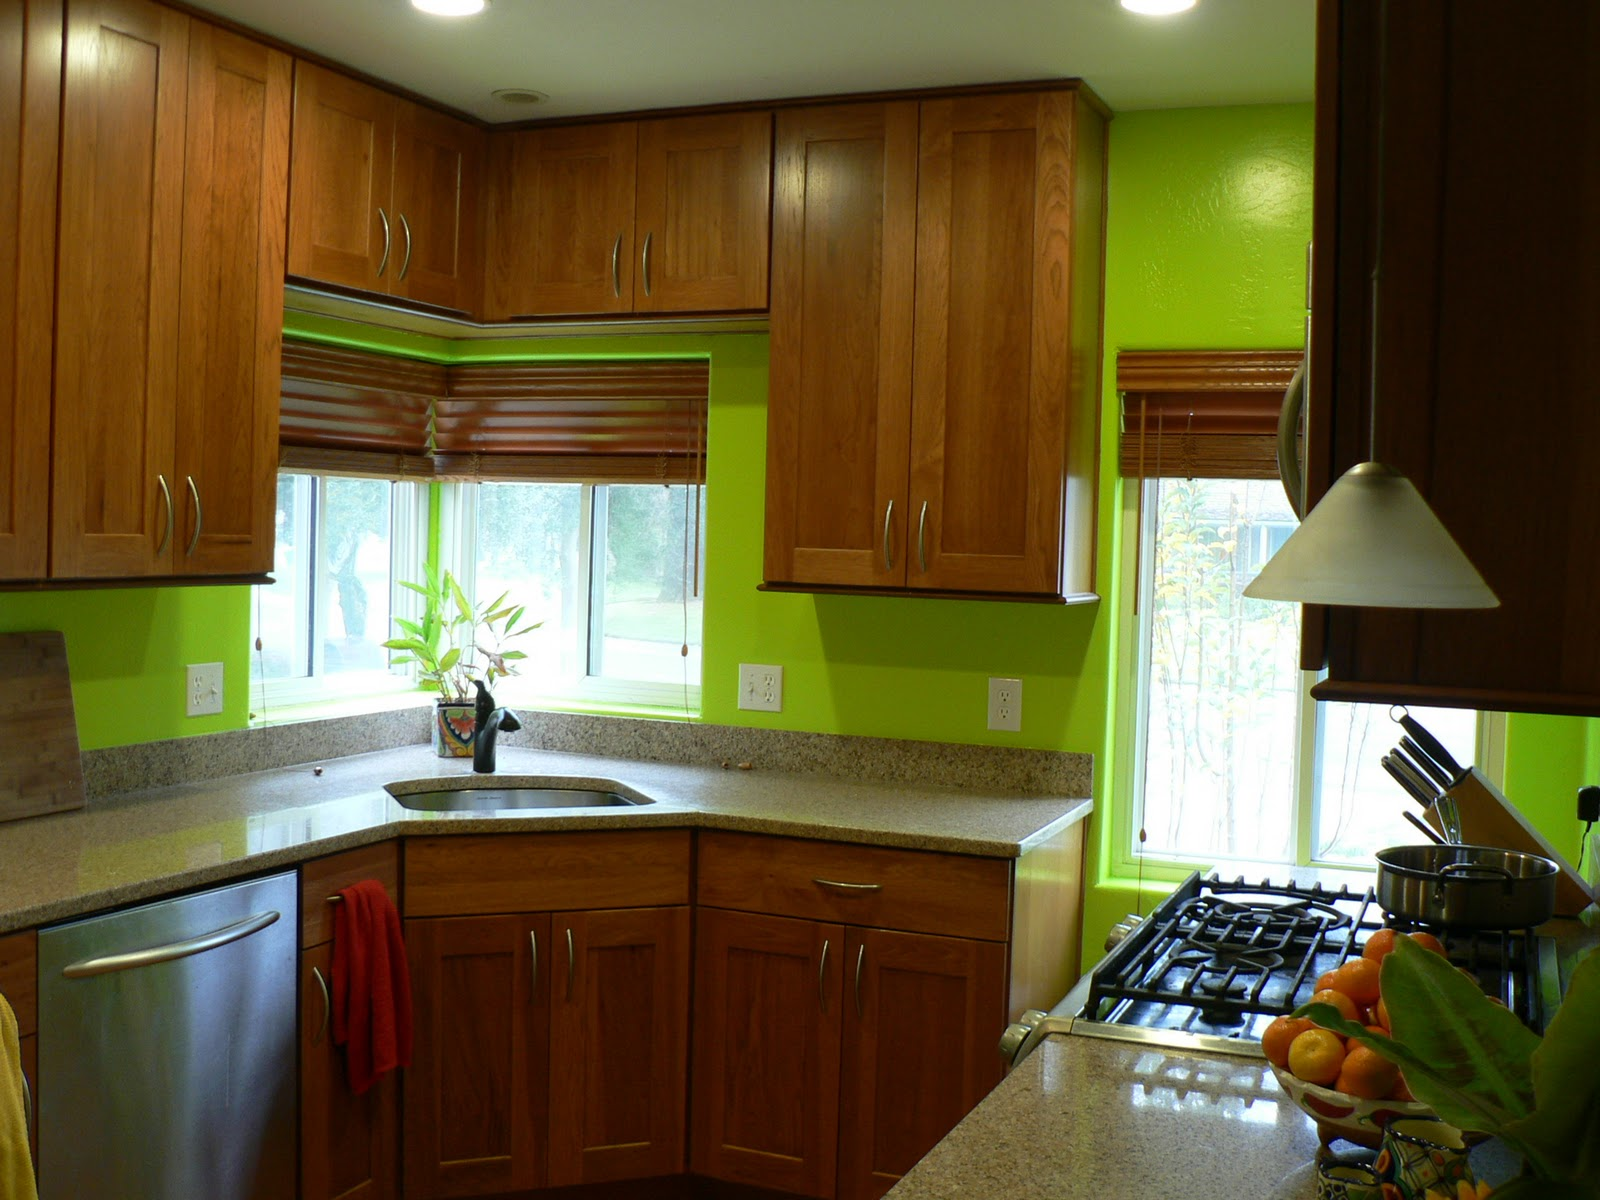 My Bright Green Kitchen. I Love Her!